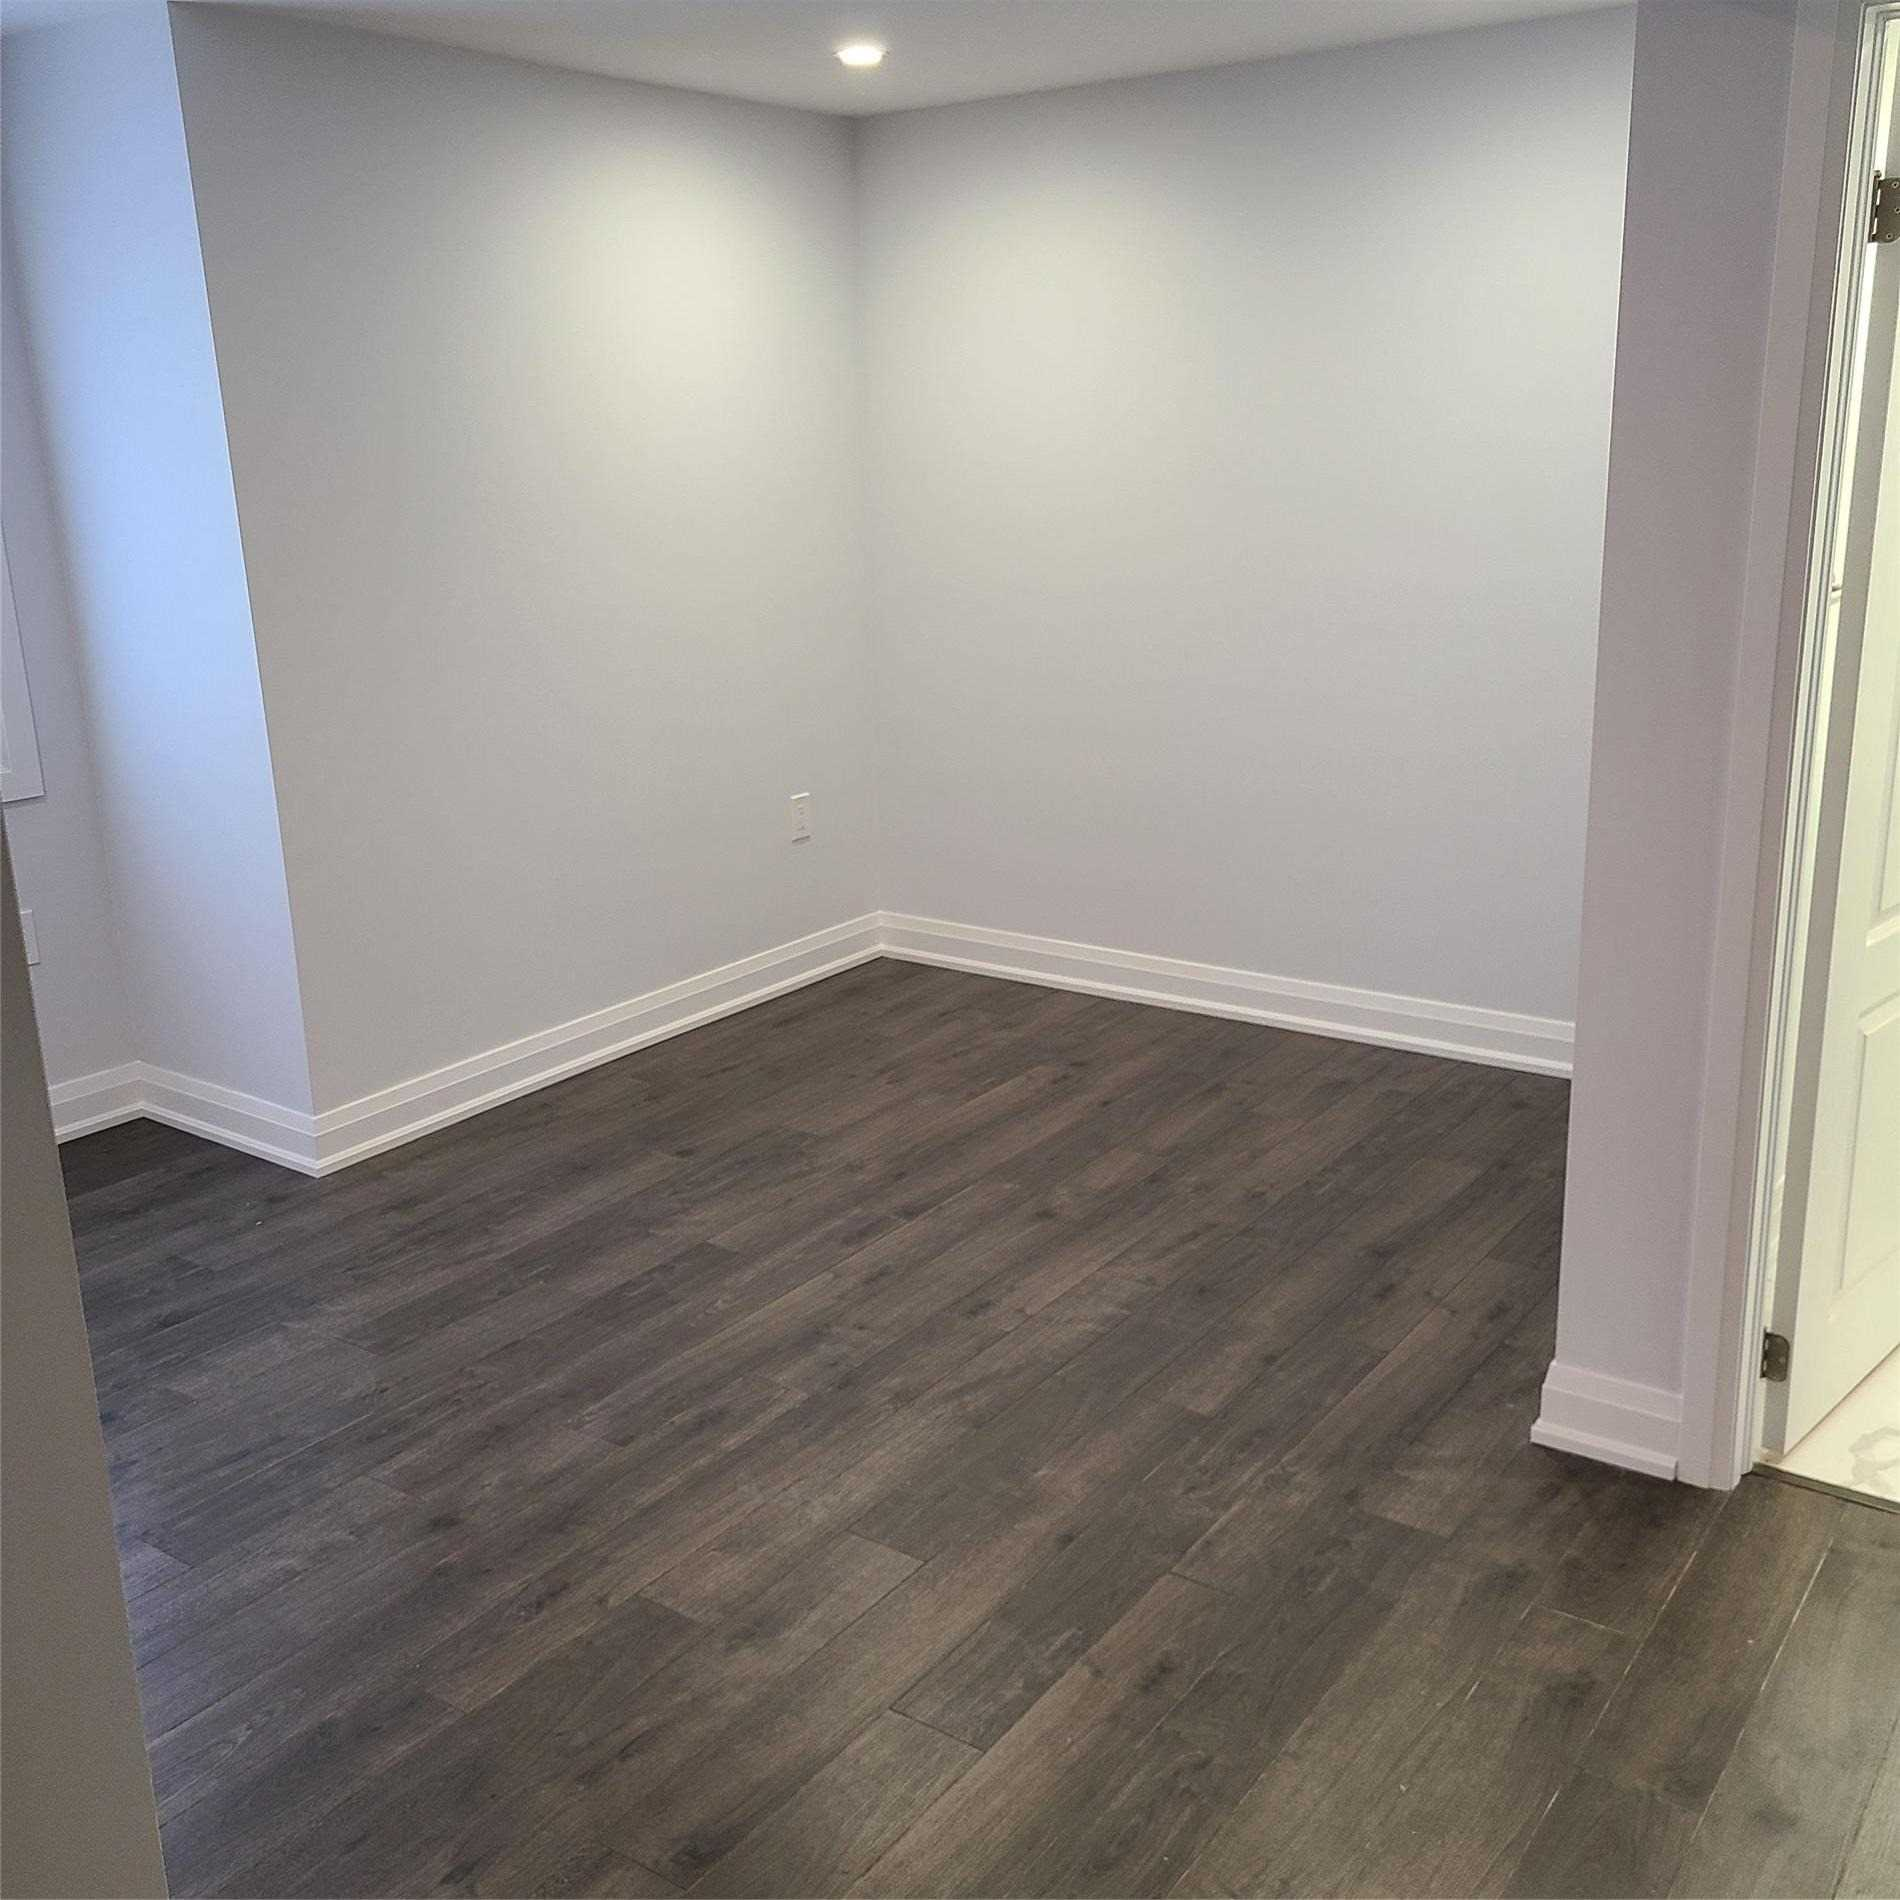 Detached house For Lease In Richmond Hill - 21 Stookes Cres, Richmond Hill, Ontario, Canada L4E0J4 , 2 Bedrooms Bedrooms, ,2 BathroomsBathrooms,Detached,For Lease,Stookes